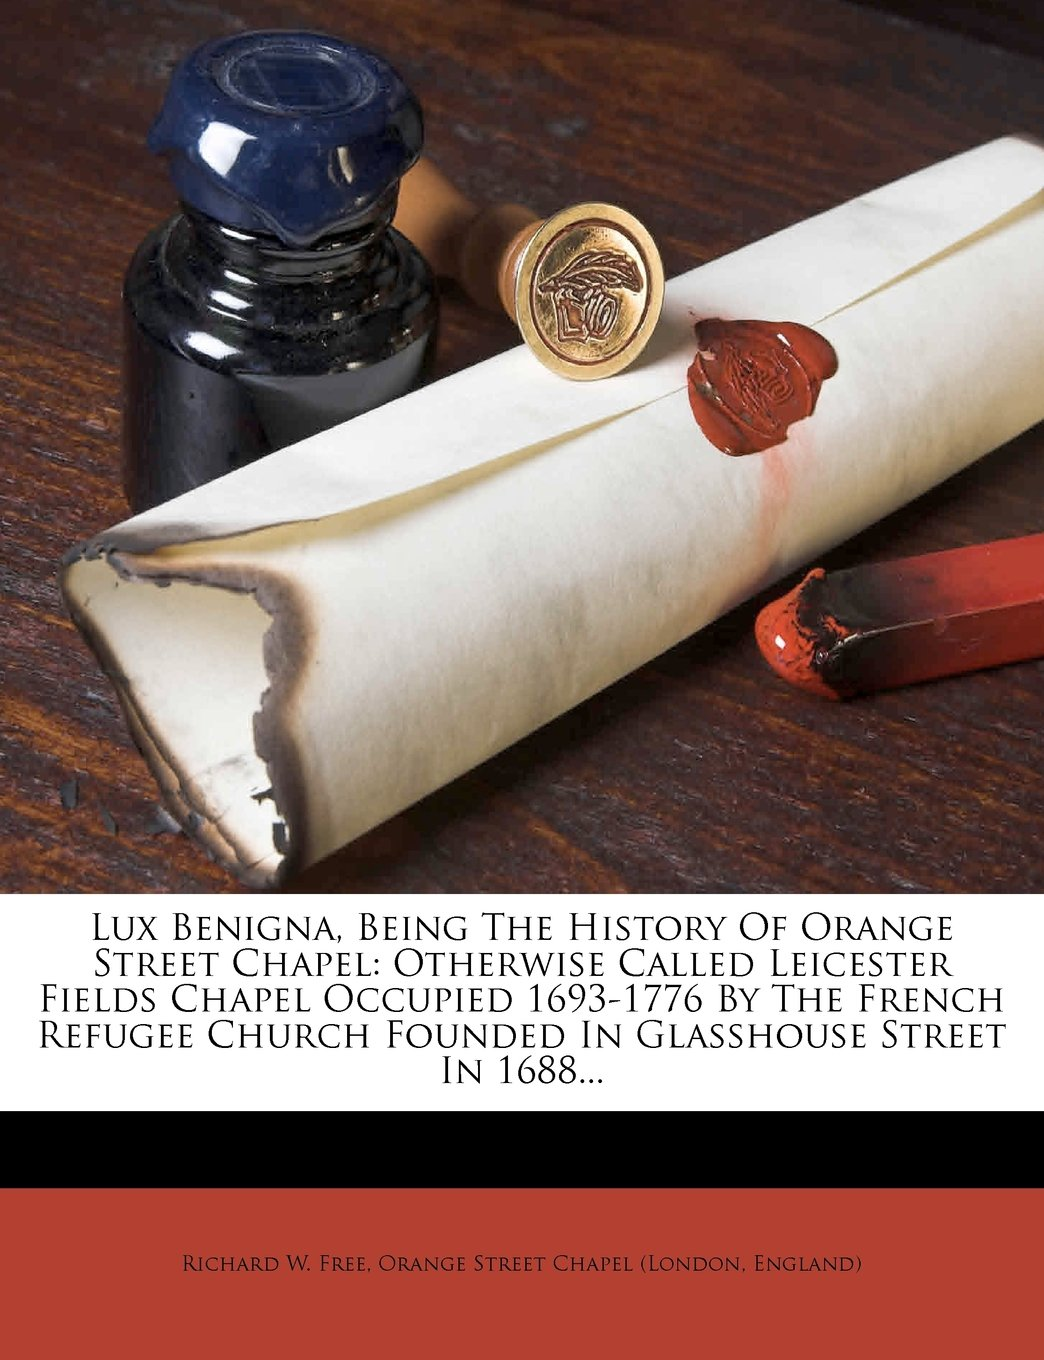 Download Lux Benigna, Being The History Of Orange Street Chapel: Otherwise Called Leicester Fields Chapel Occupied 1693-1776 By The French Refugee Church Founded In Glasshouse Street In 1688... PDF